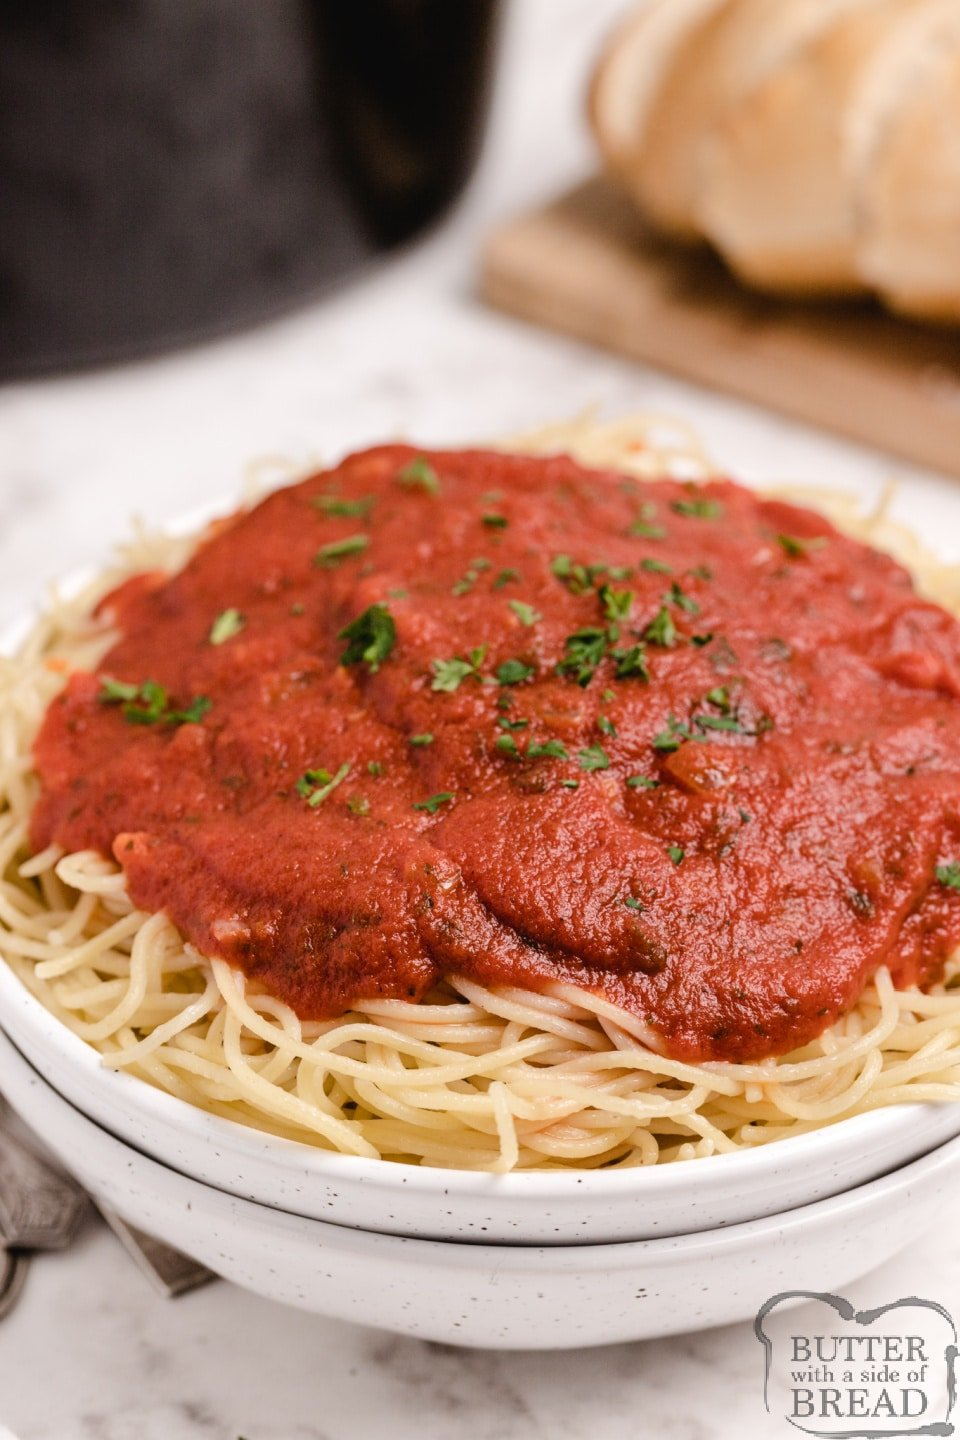 Bowl of spaghetti with homemade spaghetti sauce made in a slow cooker